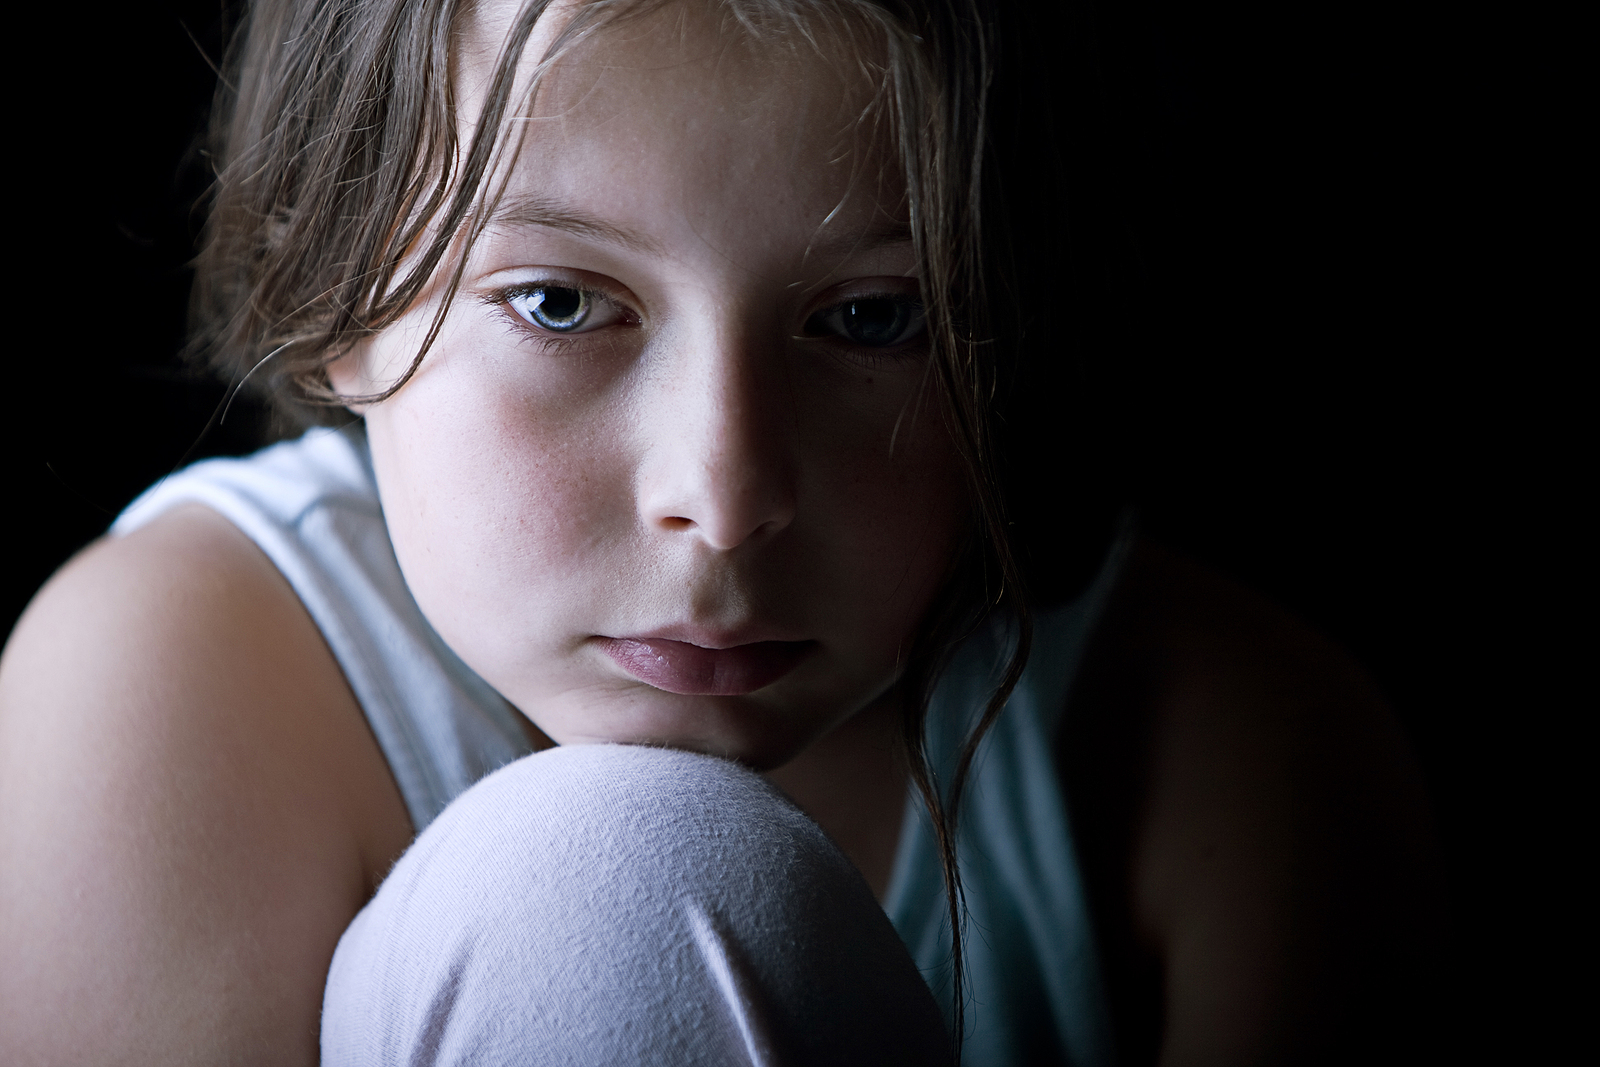 Depressed children face a higher risk of chronic illnesses when they grow up